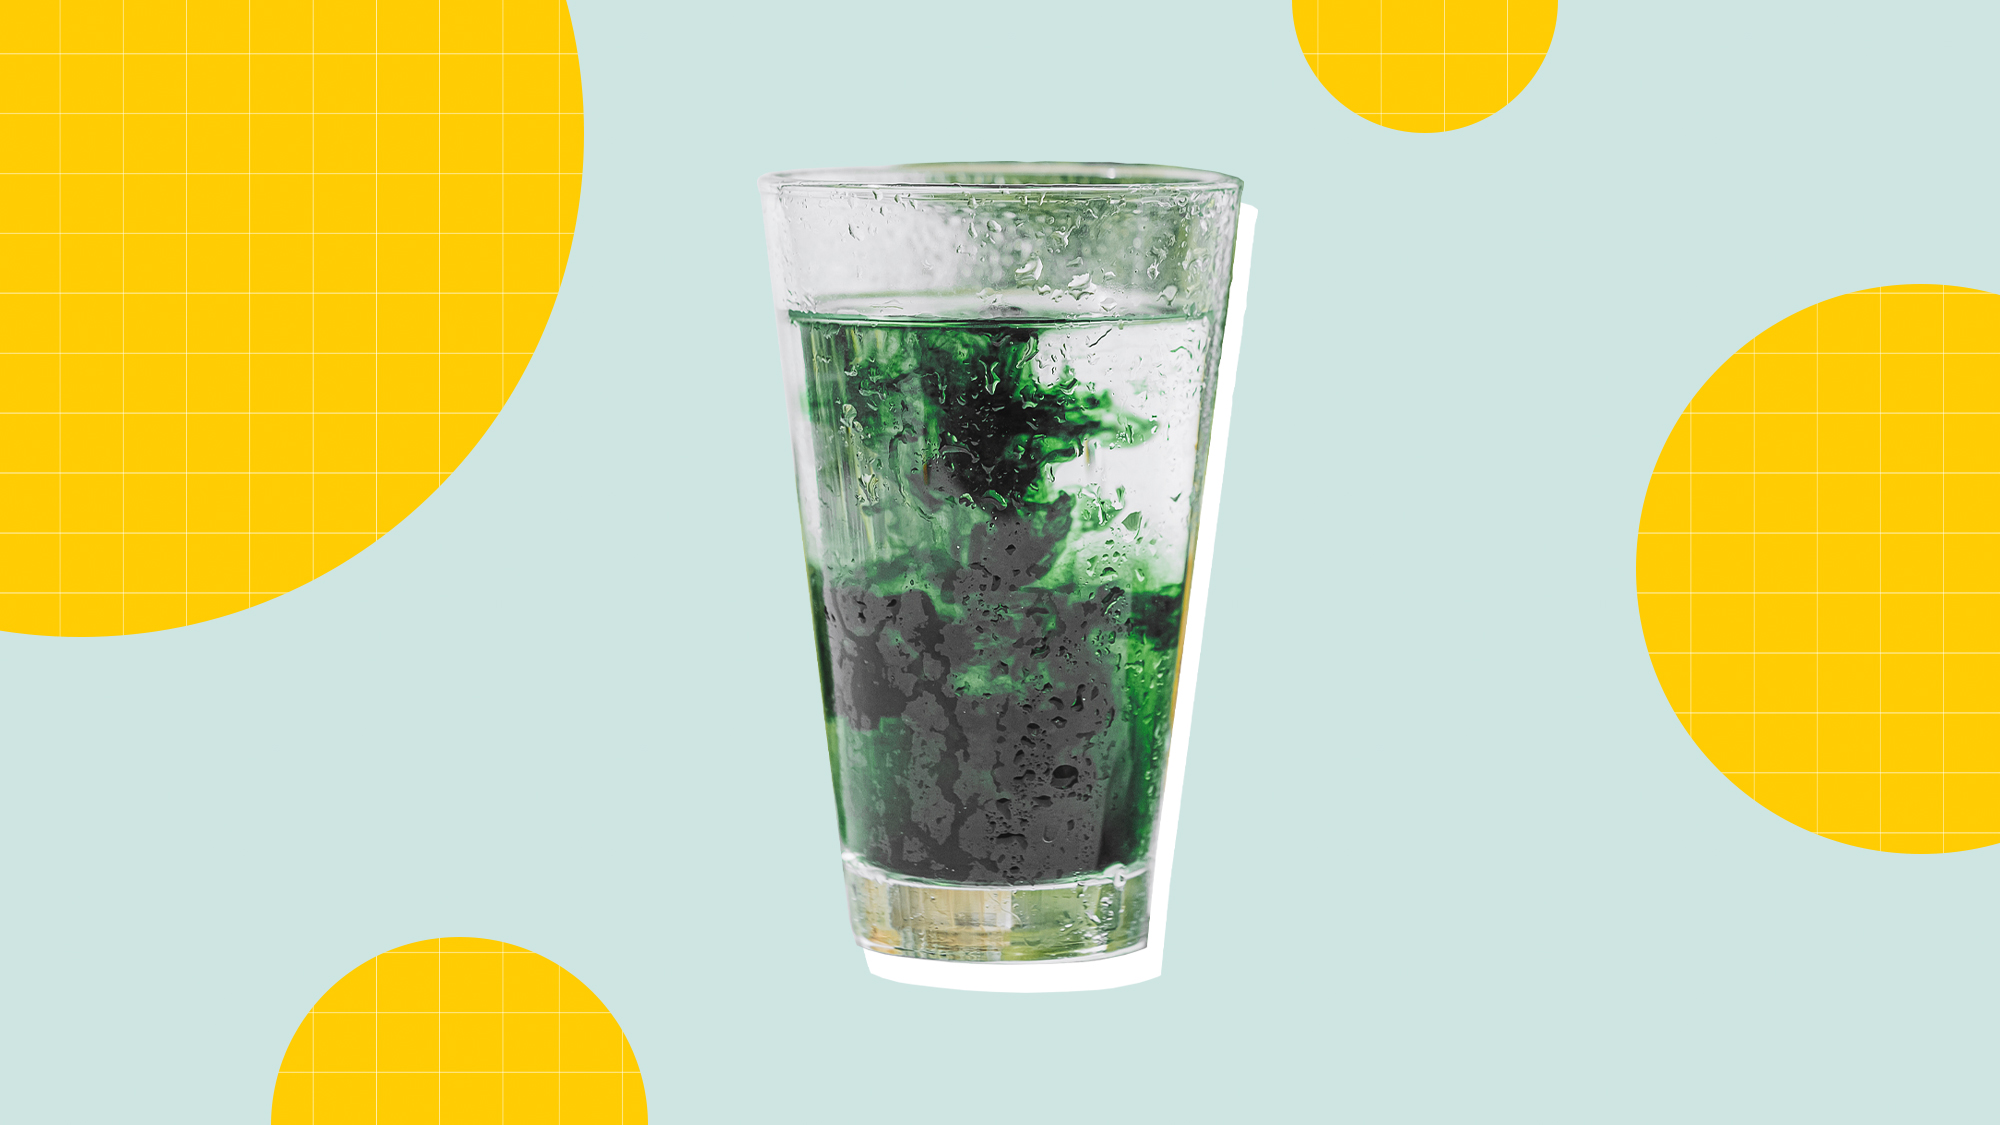 A cup of Chlorophyll on a designed background